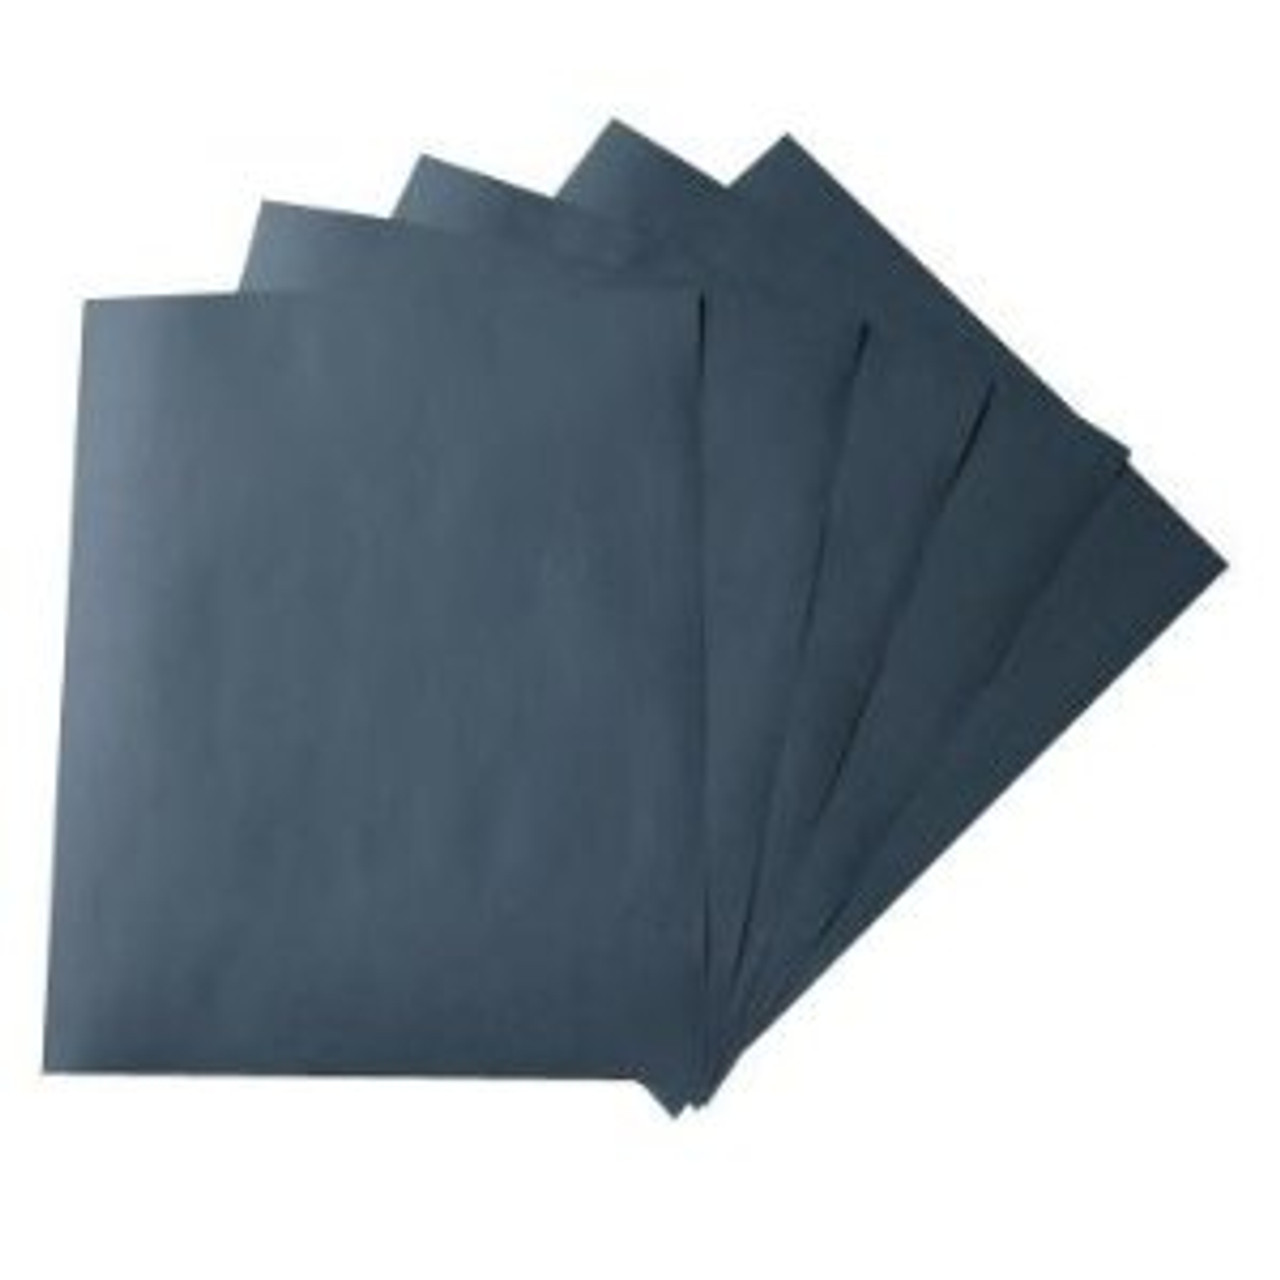 Wet Dry Half Sheet Sandpaper